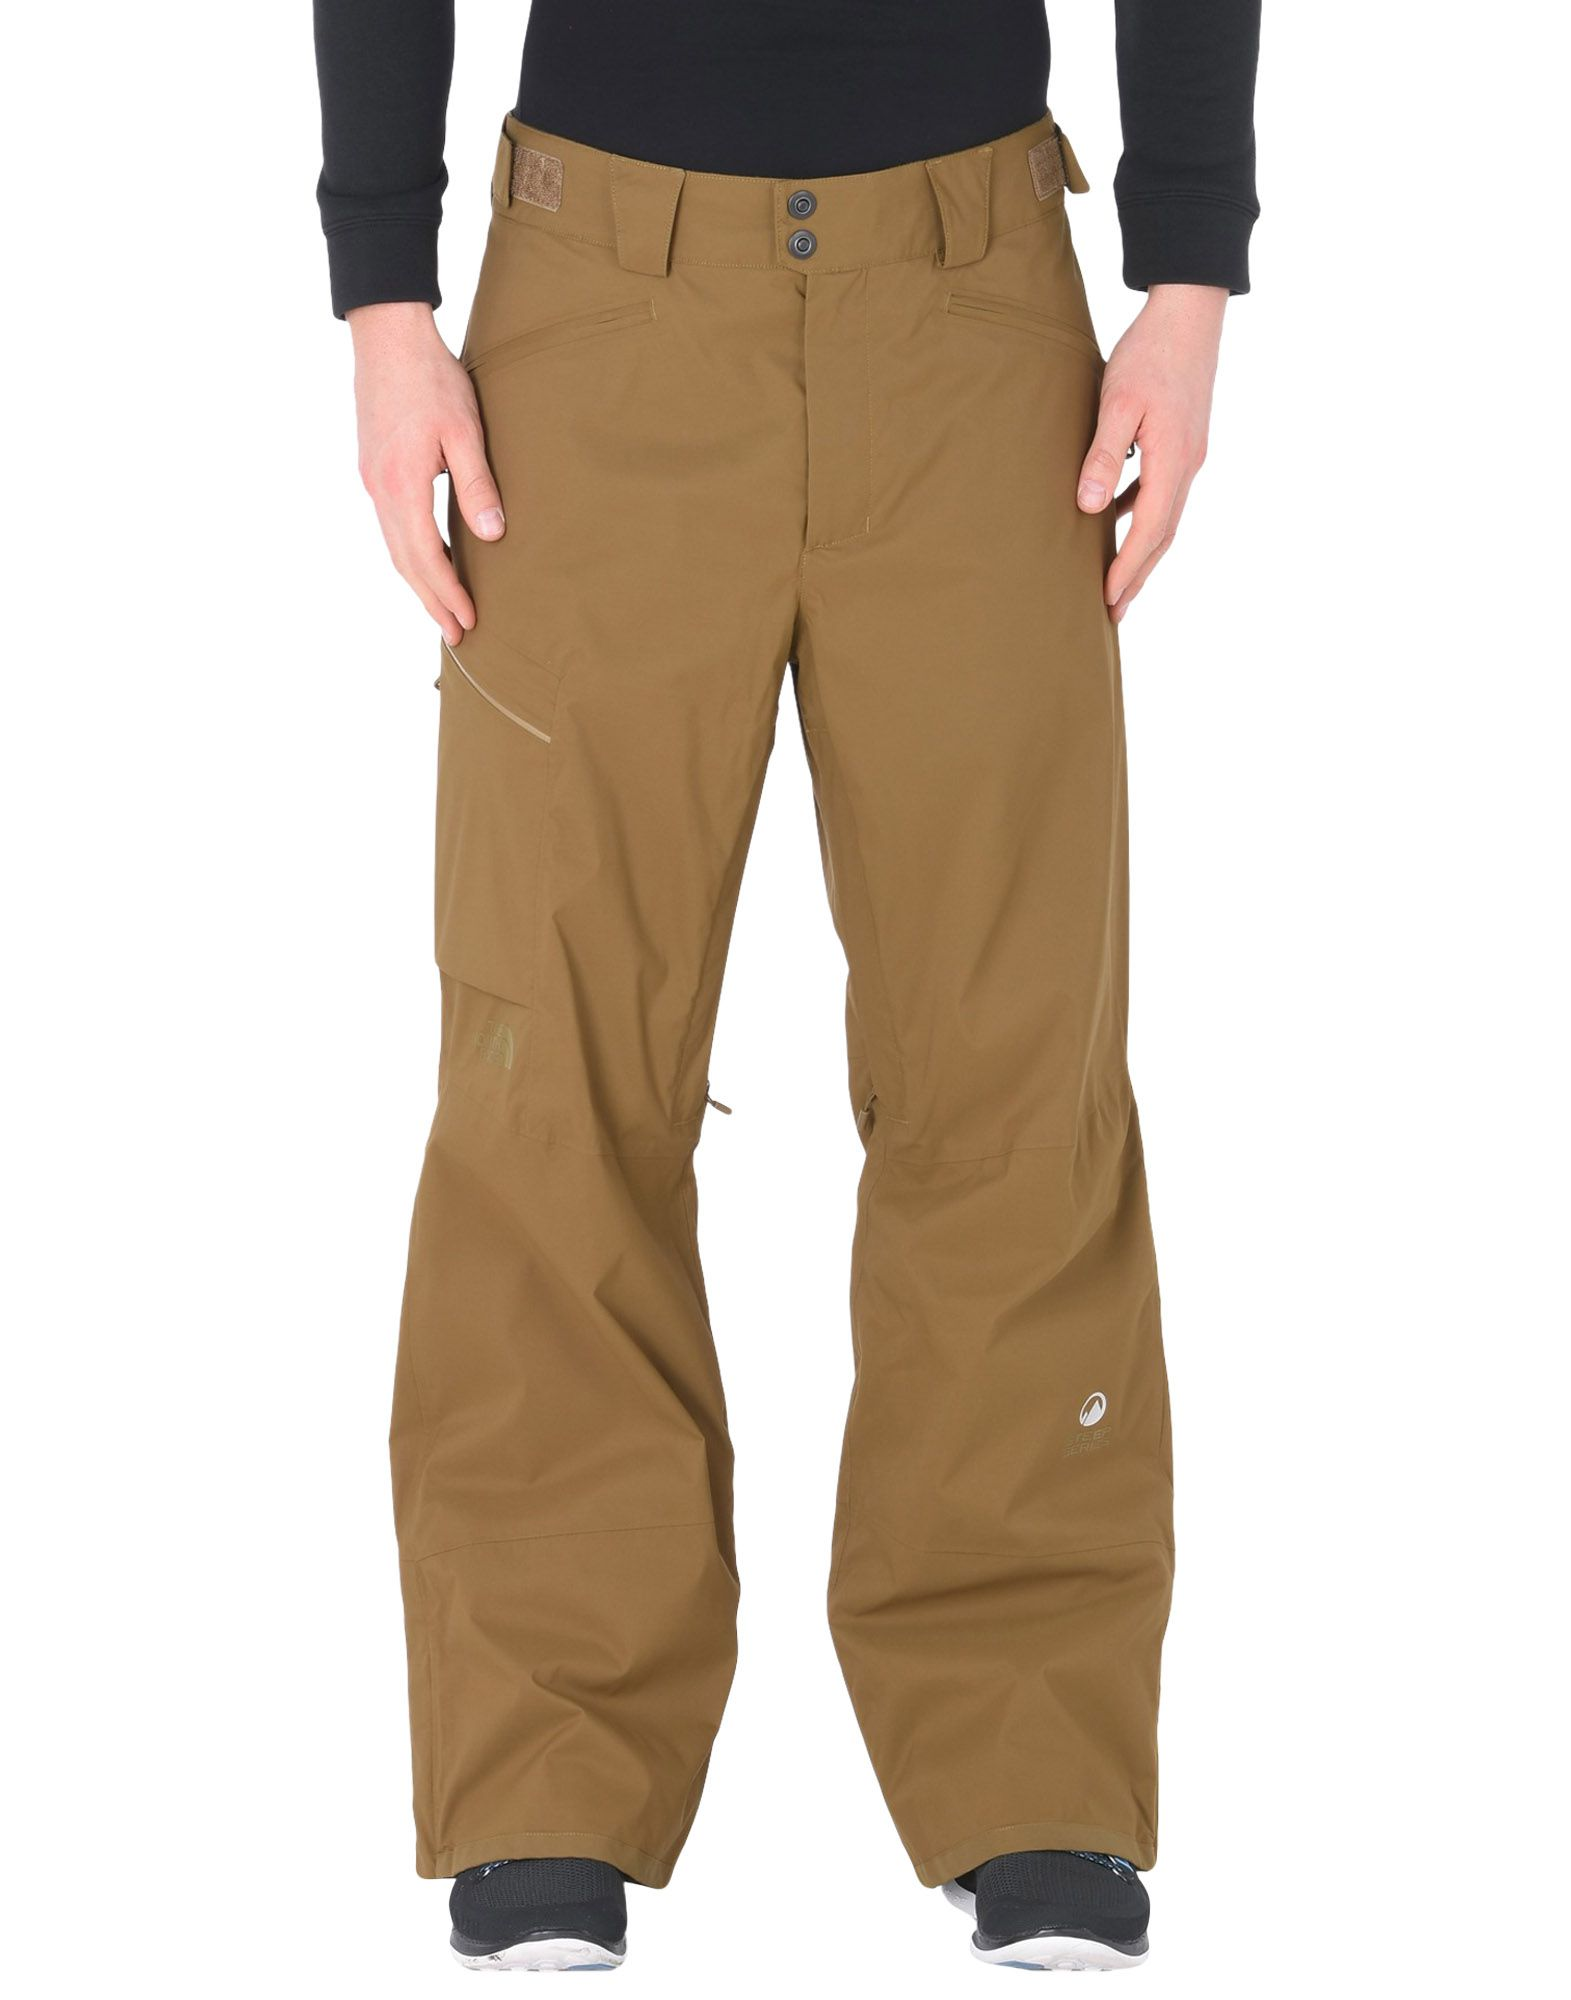 Pantalone Sportivo The North Face M Sickline Insulated Ski Pant Dryvent Waterproof - Uomo - Acquista online su